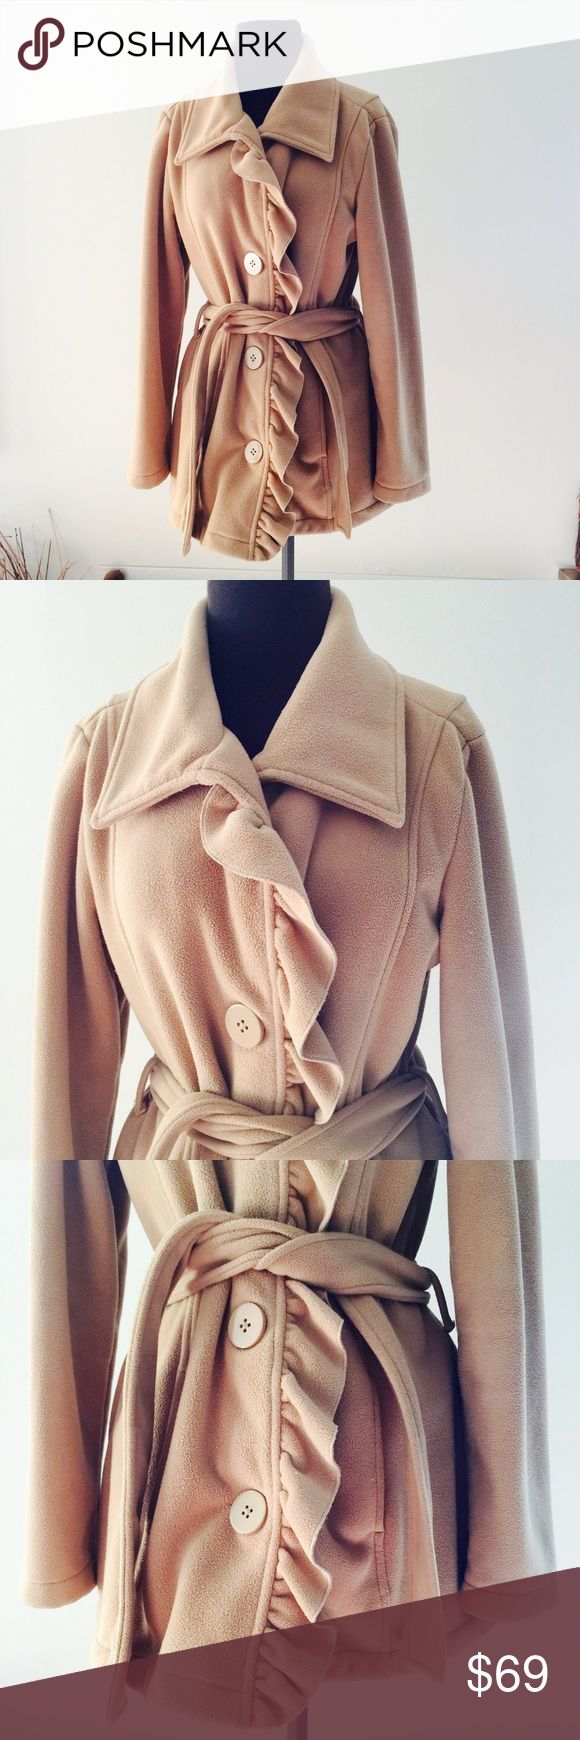 ❗Nordstrom British Khaki Ruffle Coat MSRP $120 ❗Nordstrom British Khaki Riffled Pea Coat. Size Medium in great condition! Retails $120. Make an offer! I consider all reasonable offers on items & give great bundle deals! Winter cleanout sale ;-) Nordstrom Jackets & Coats Pea Coats